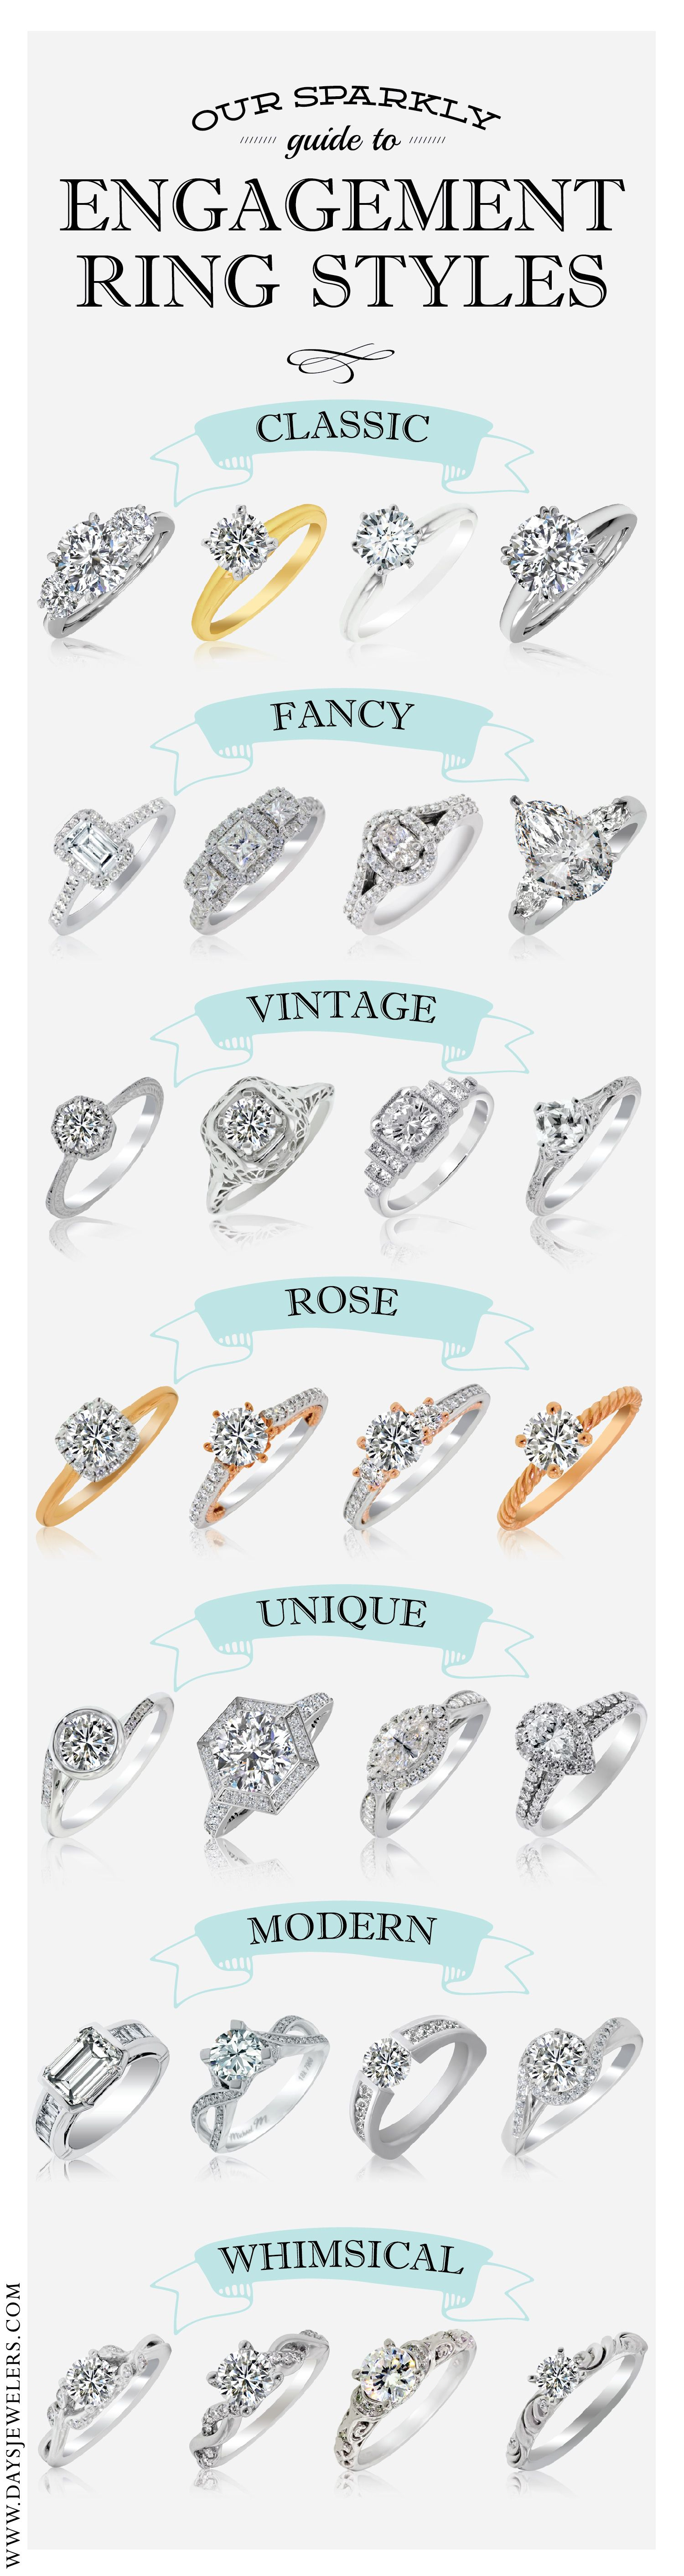 Engagement ring style guide anillos de compromiso | alianzas de boda | anillos de compromiso baratos http://amzn.to/297uk4t